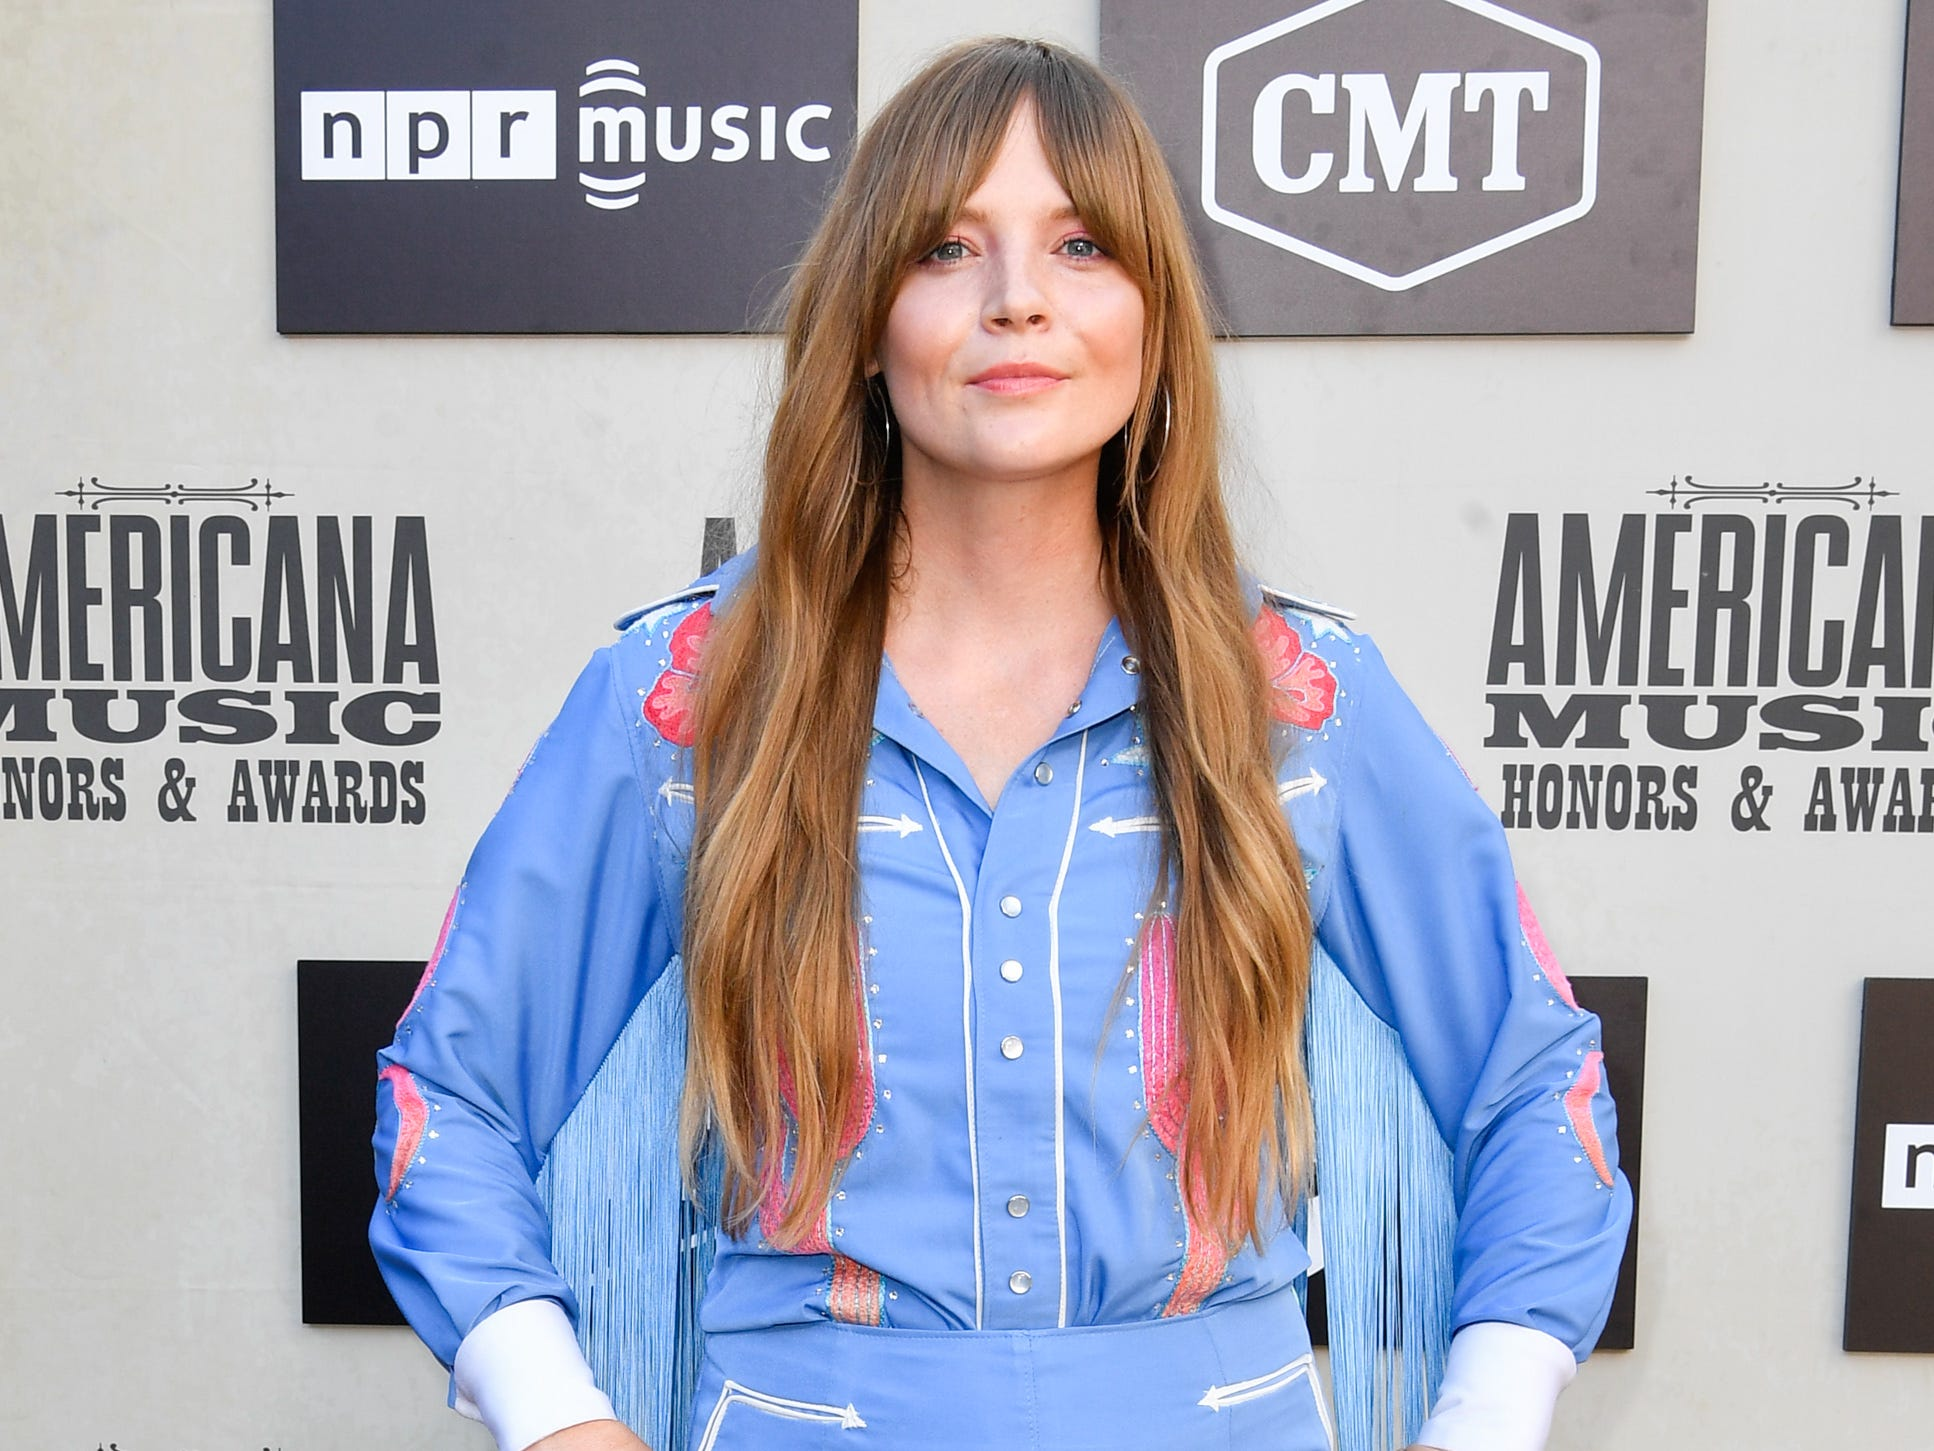 Courtney Marie Andrews poses on the red carpet before the 2018 Americana Honors and Awards show at the Ryman Auditorium in Nashville, Tenn., Wednesday, Sept. 12, 2018.